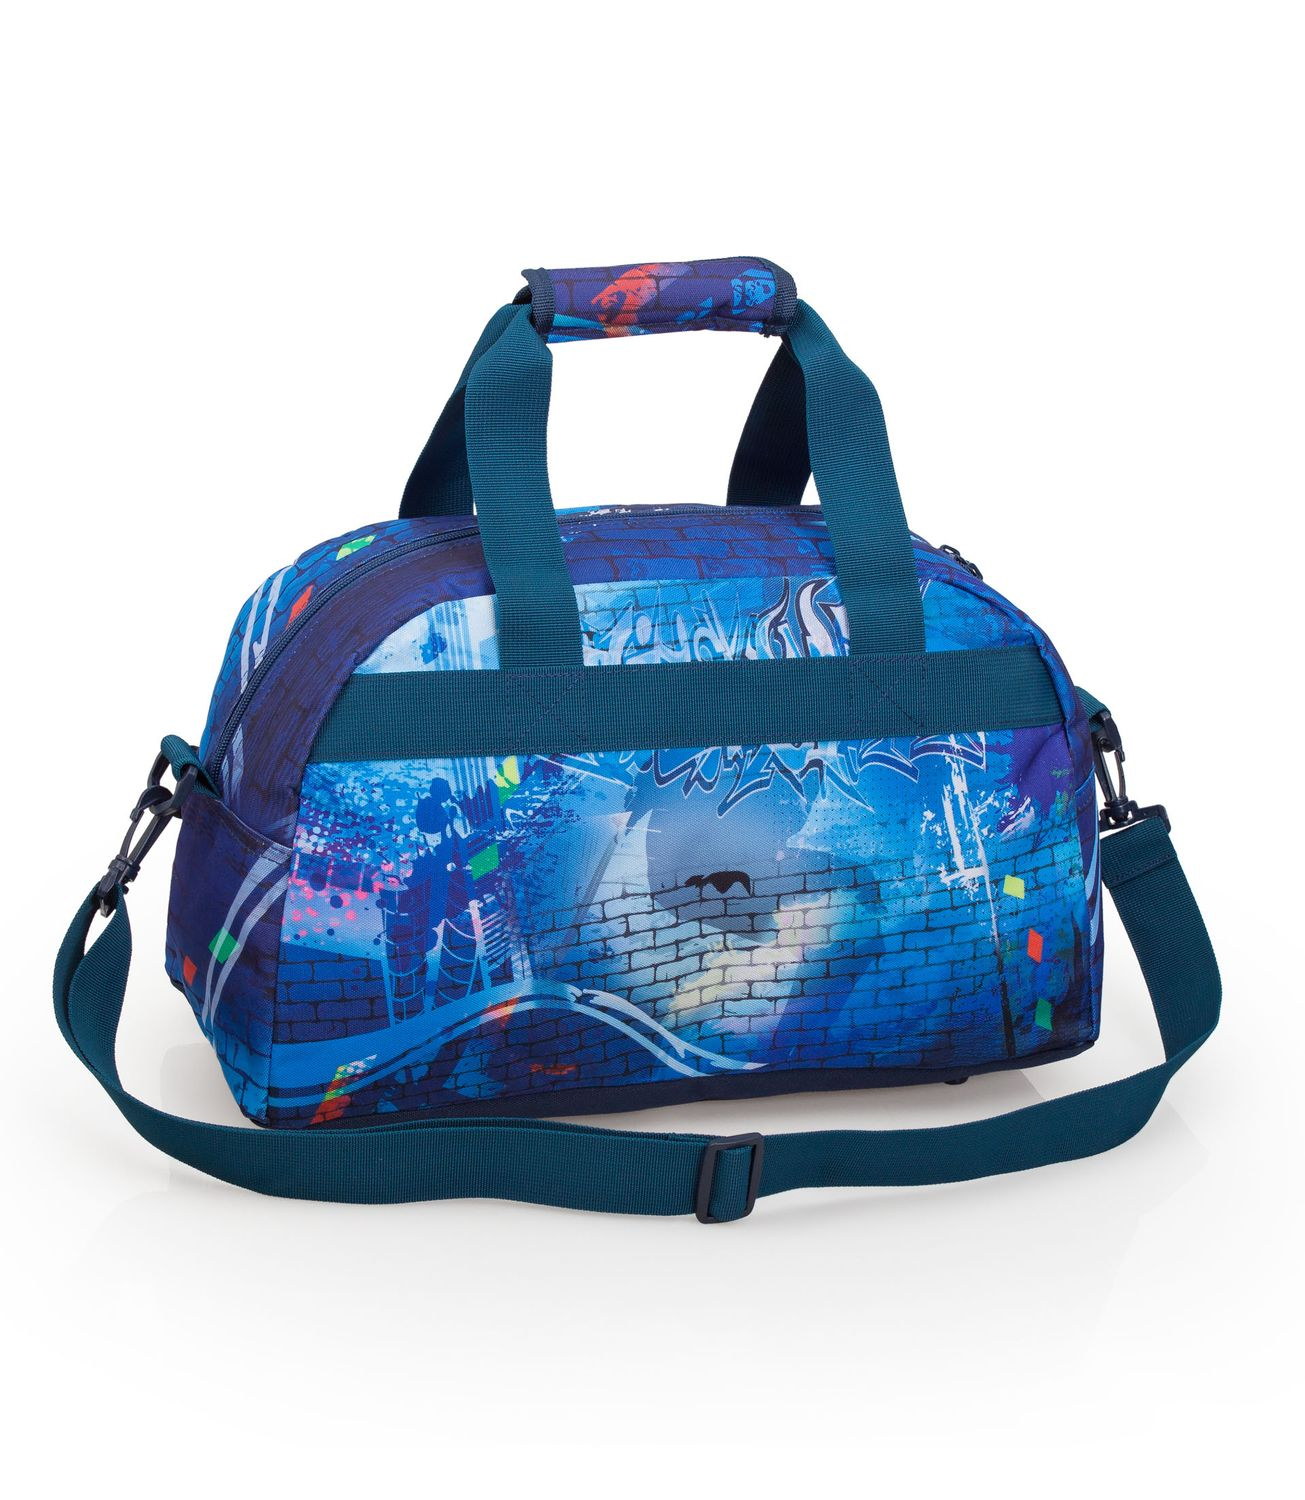 Eastwick BLUE SKATER Sports Travel Bag – image 2